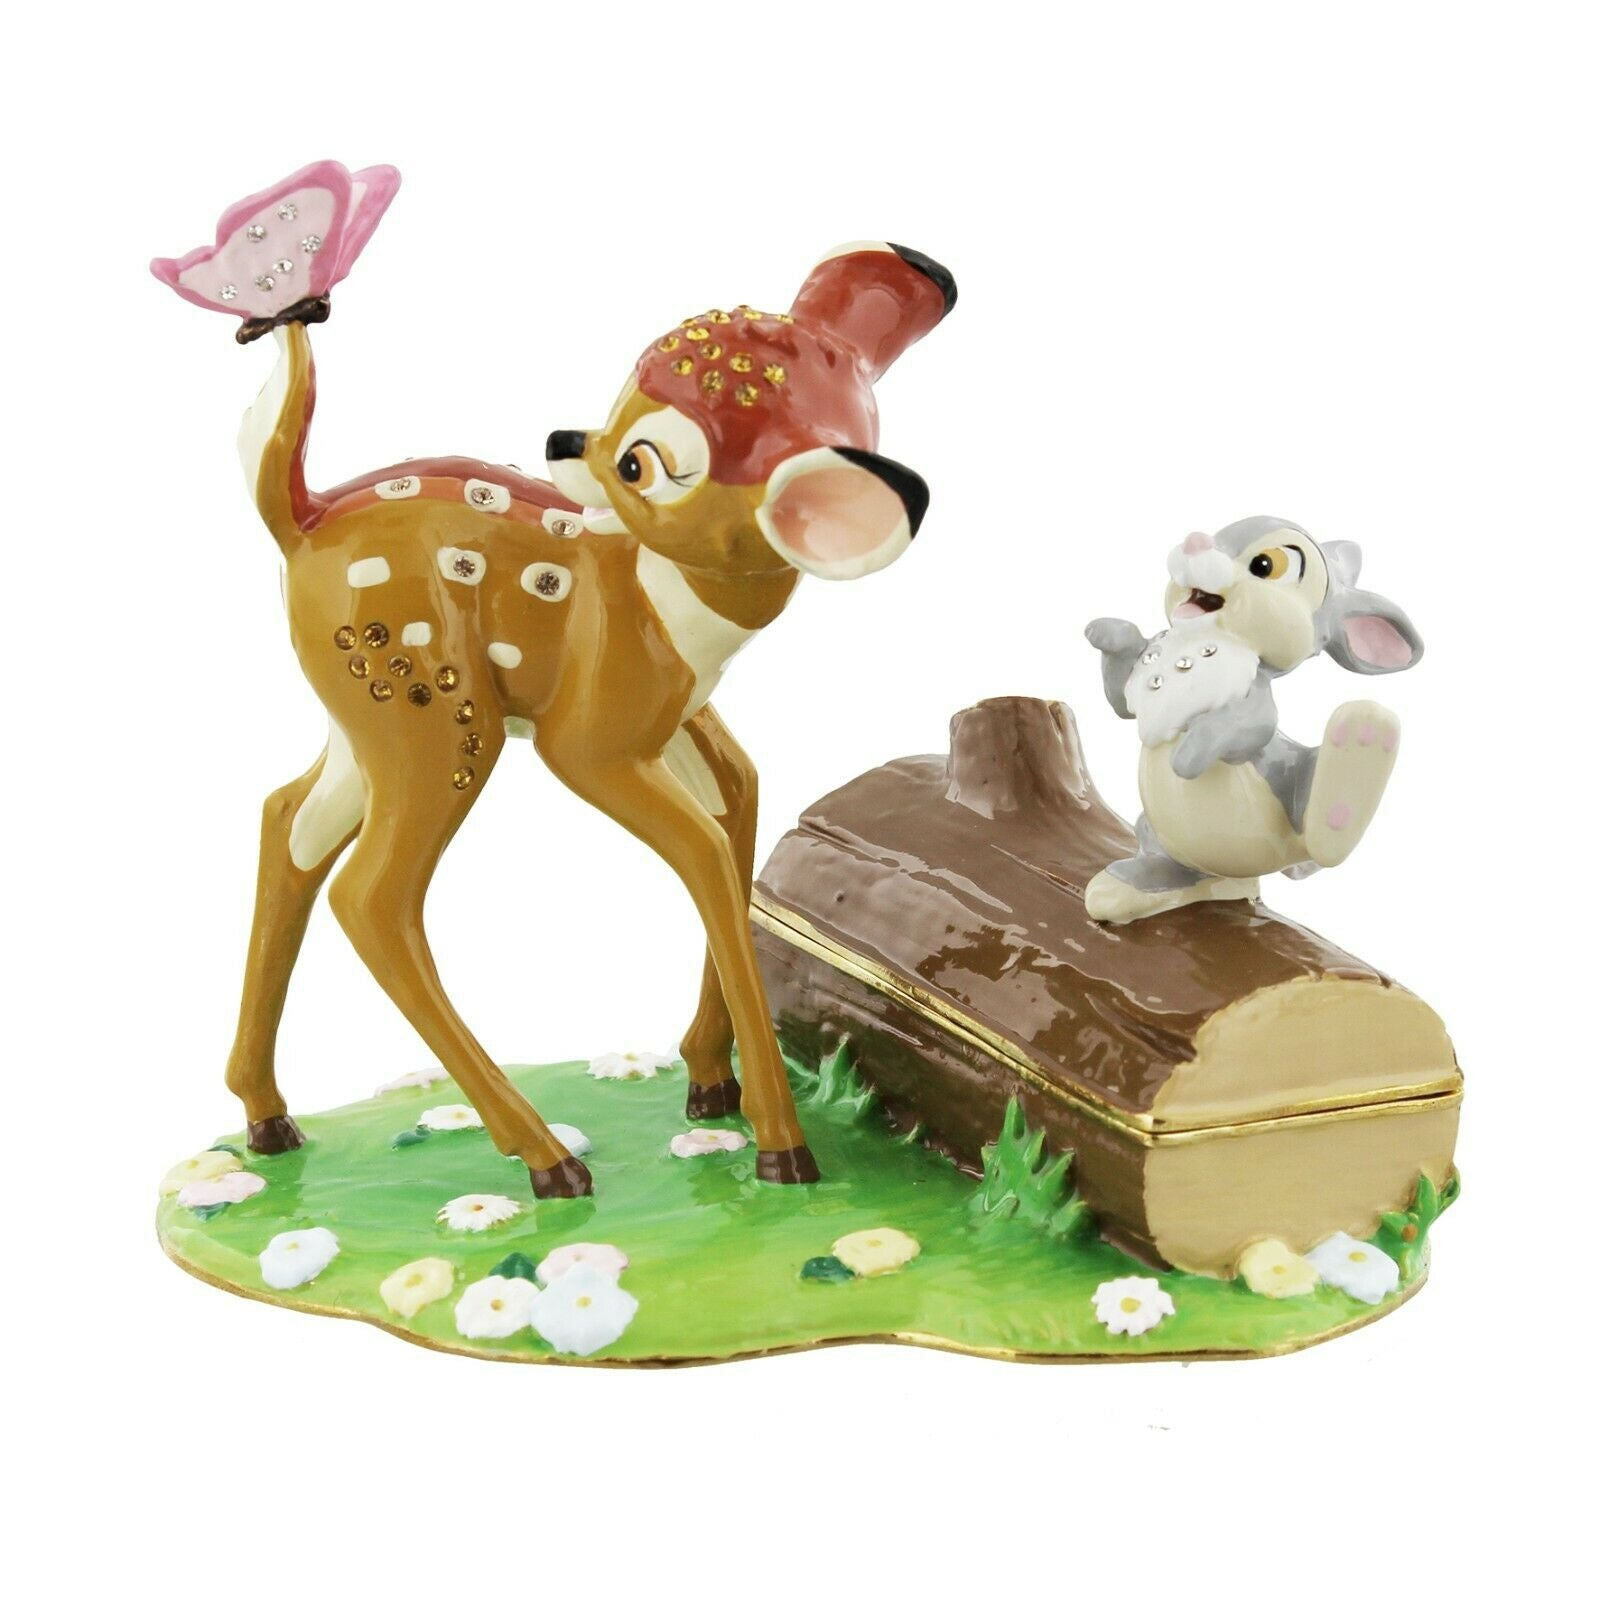 Bambi & Friends Disney Classic Trinket Box, Jewellery Cleaning & Care by The Celebrity Gift Company